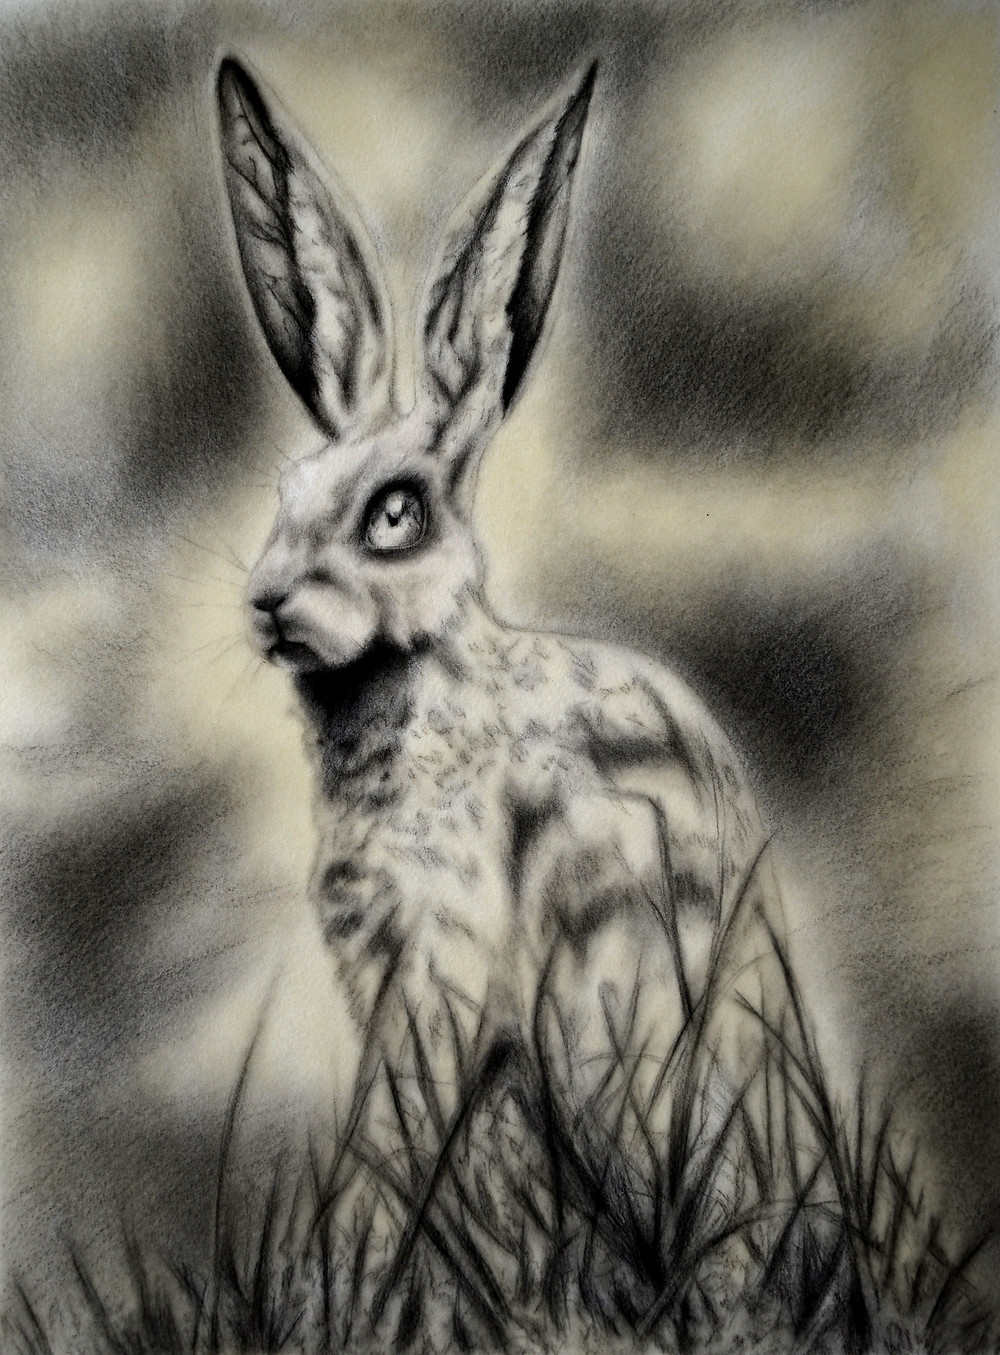 Black and white drawing of a rabbit in a grass field